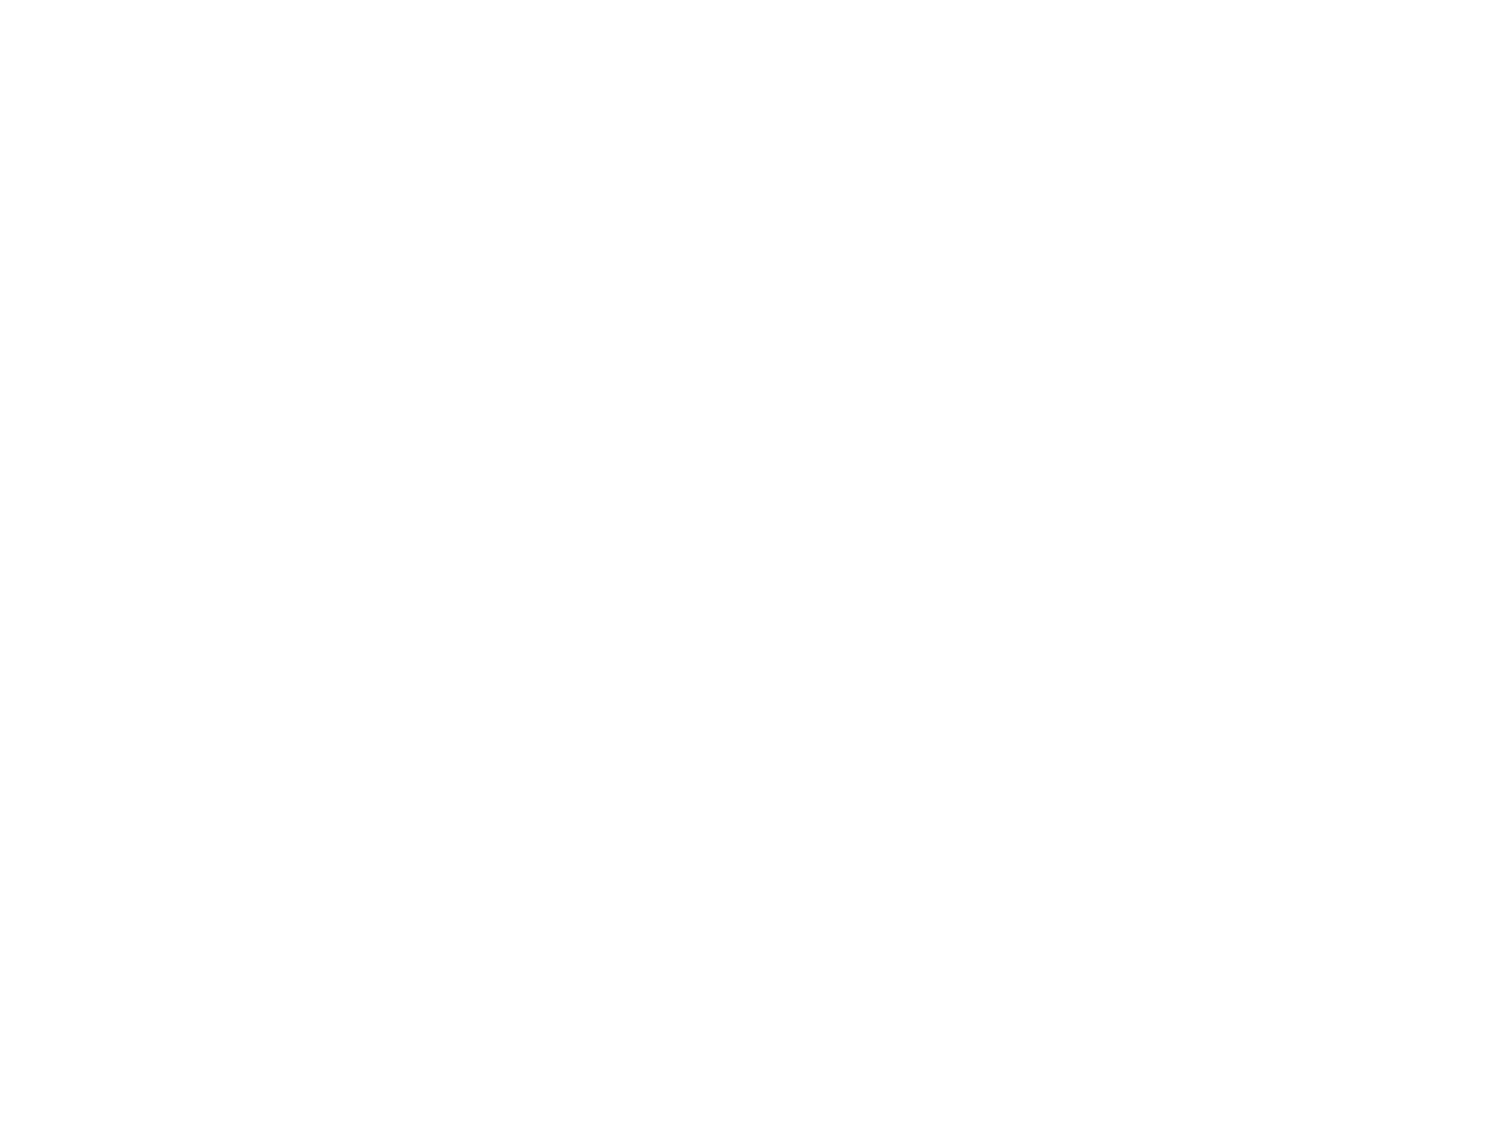 The Discipleship Fund